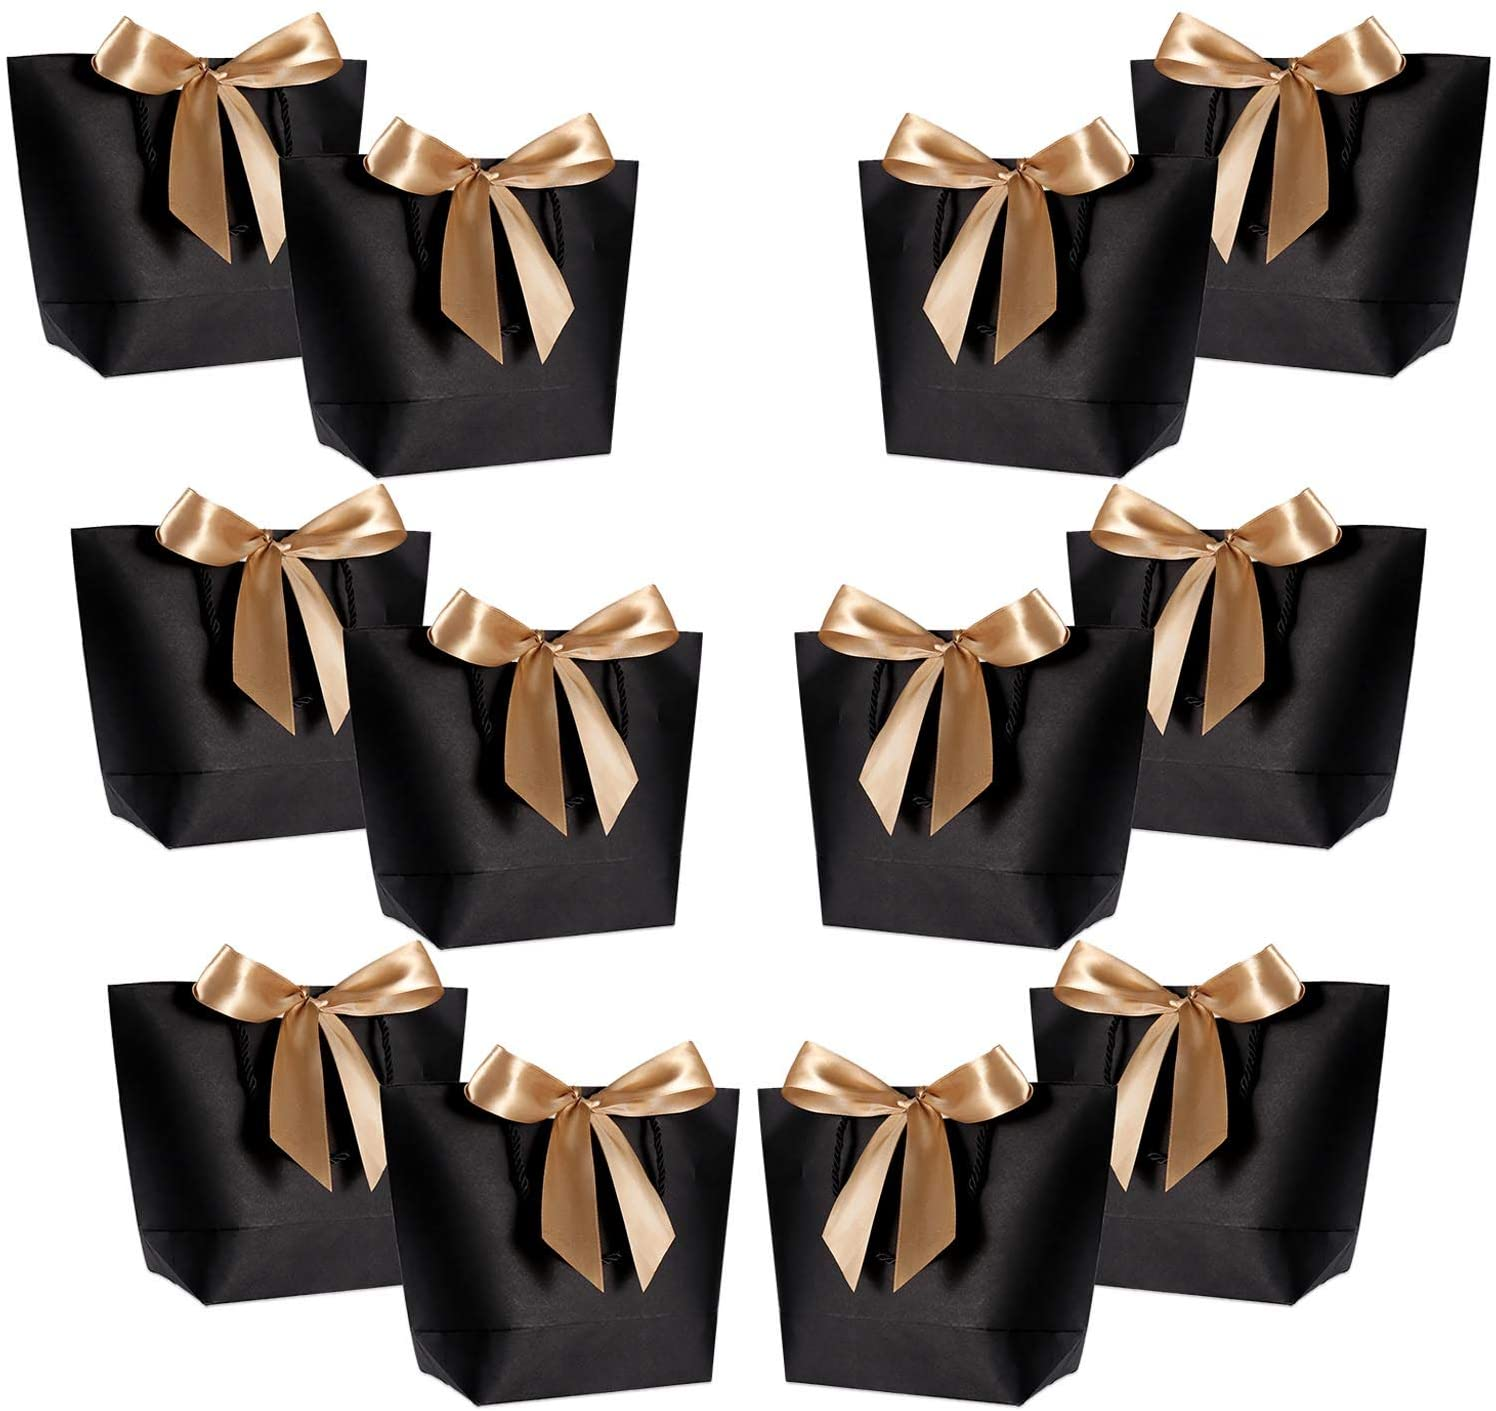 Gift Bags with Handles- WantGor 10x7.5x3inch Paper Party Favor Bag Bulk with Bow Ribbon for Birthday Wedding/Bridesmaid Celebration Present Classrooms Holiday(Matte Black, Medium- 12 Pack)